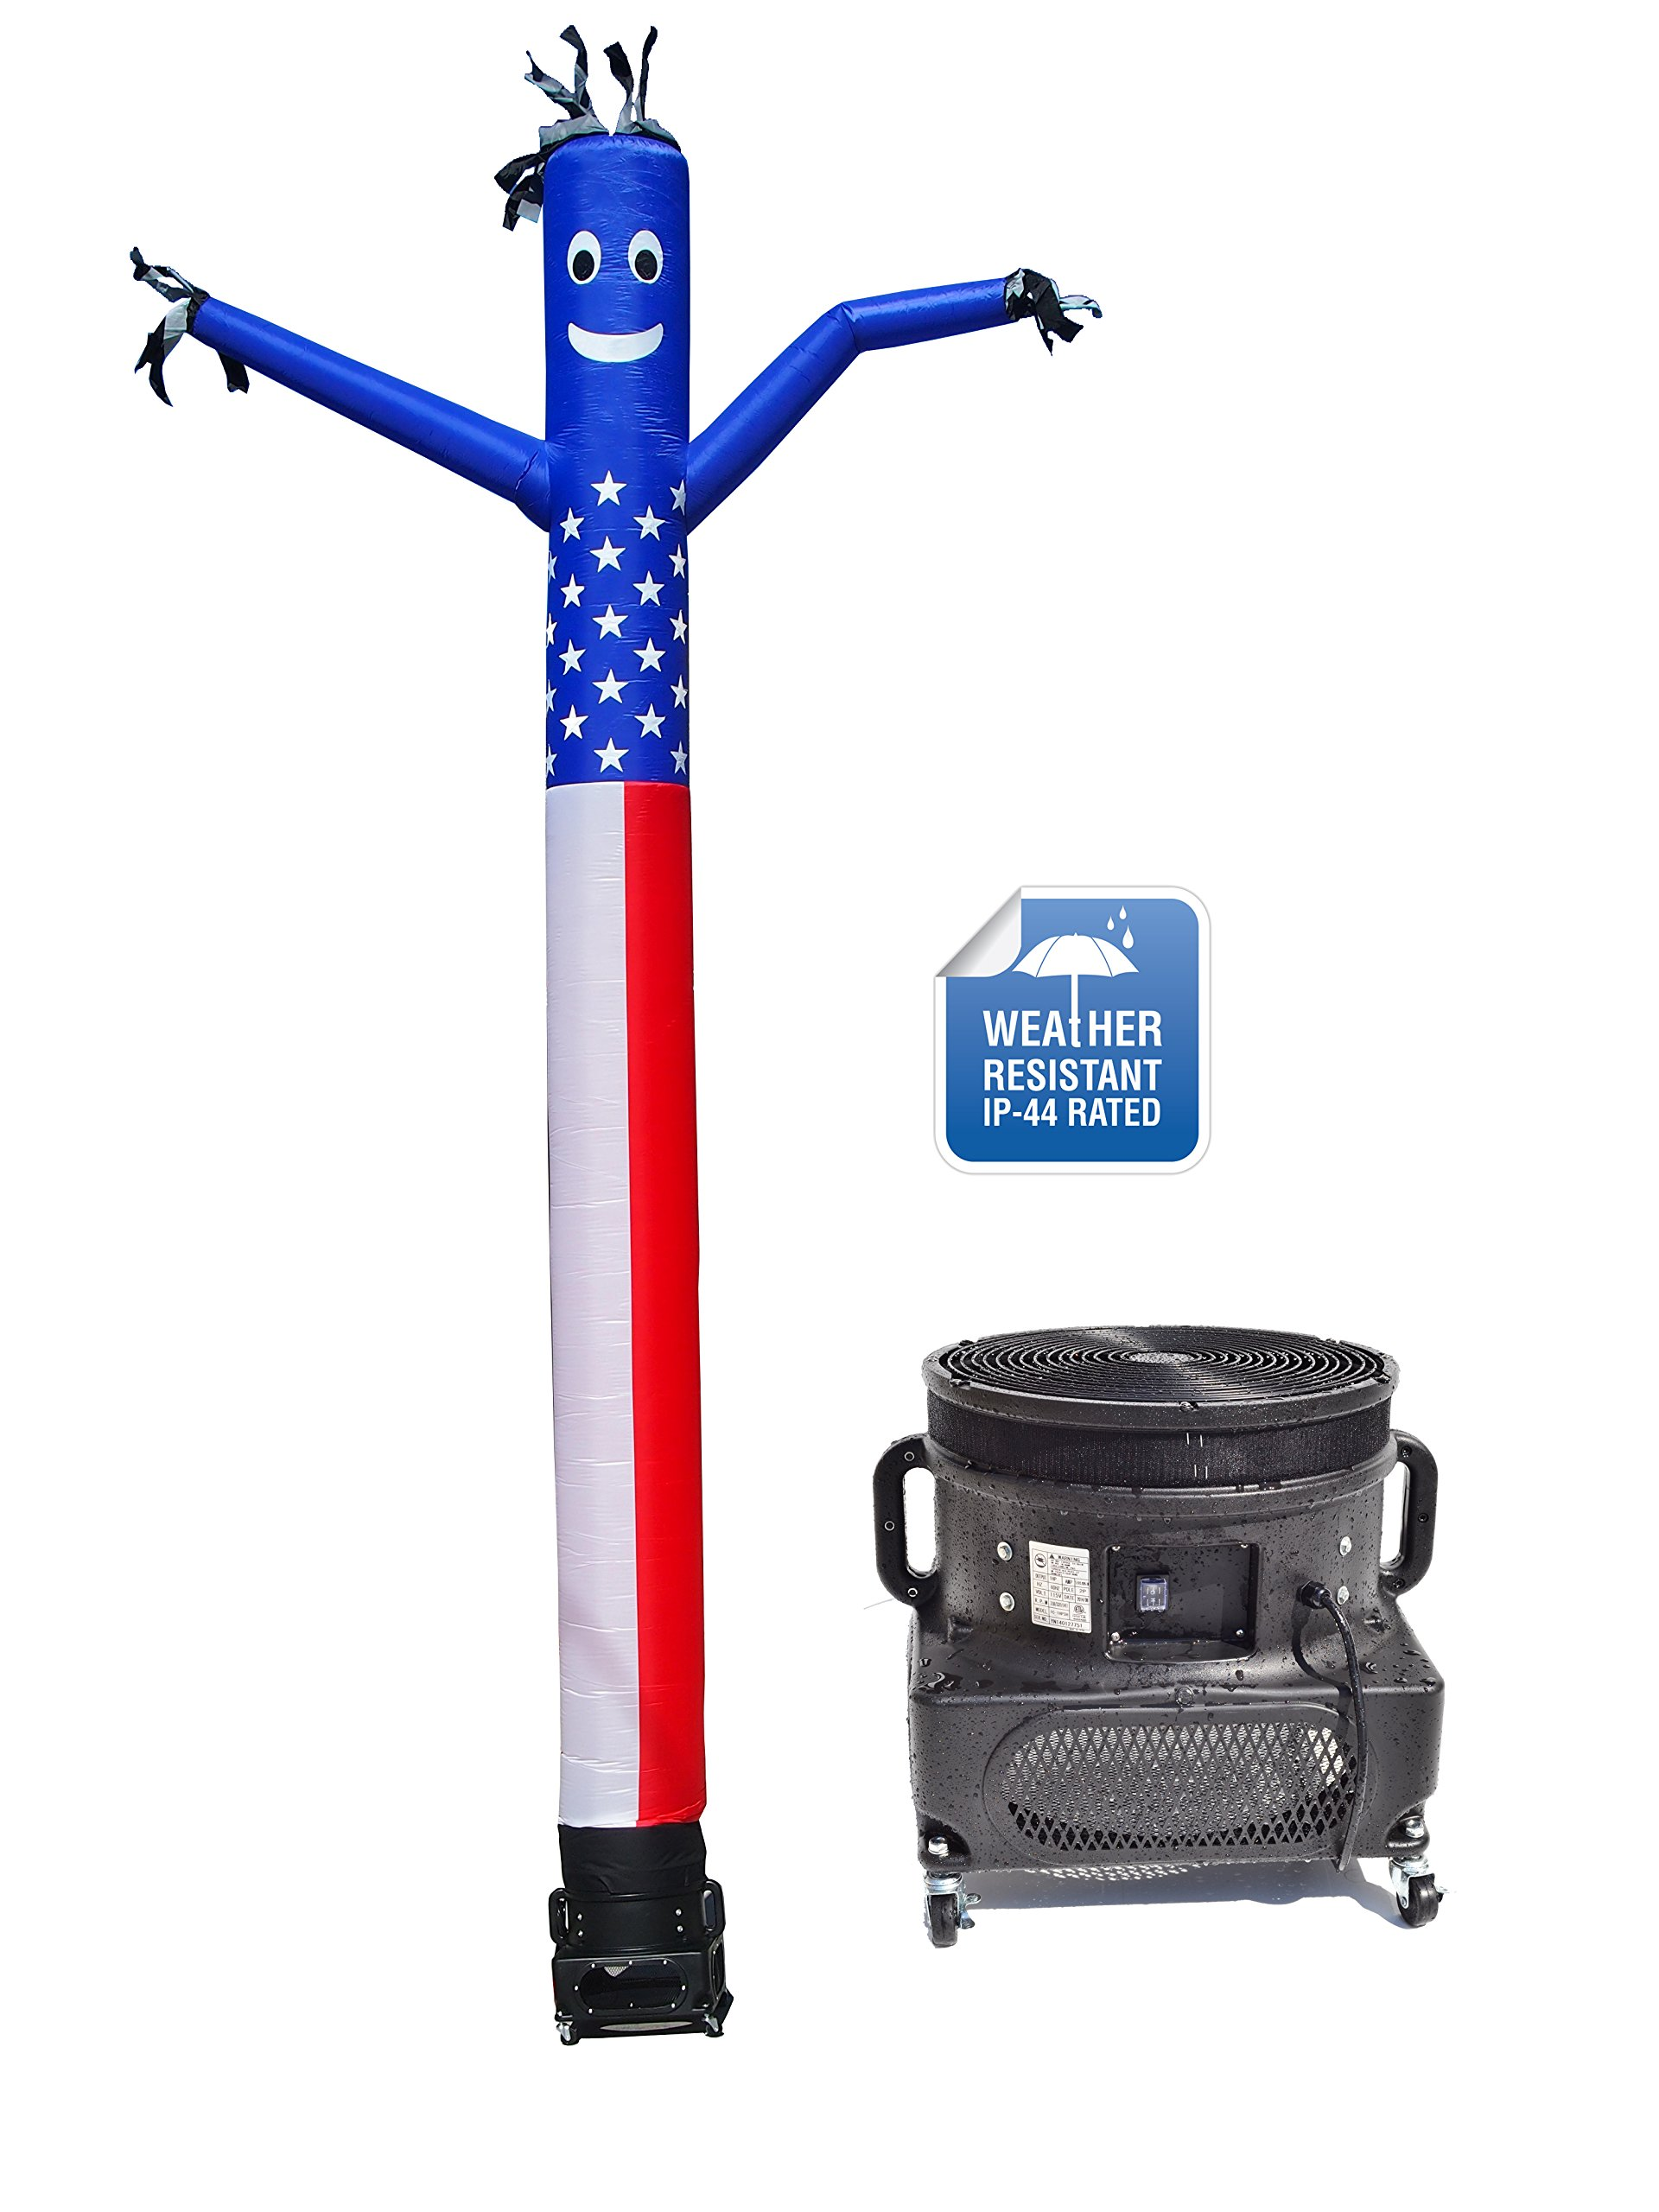 LookOurWay Air Dancers Inflatable Tube Man Complete Set with 1 HP Weather-Resistant Sky Dancer Blower, 20-Feet, American Flag